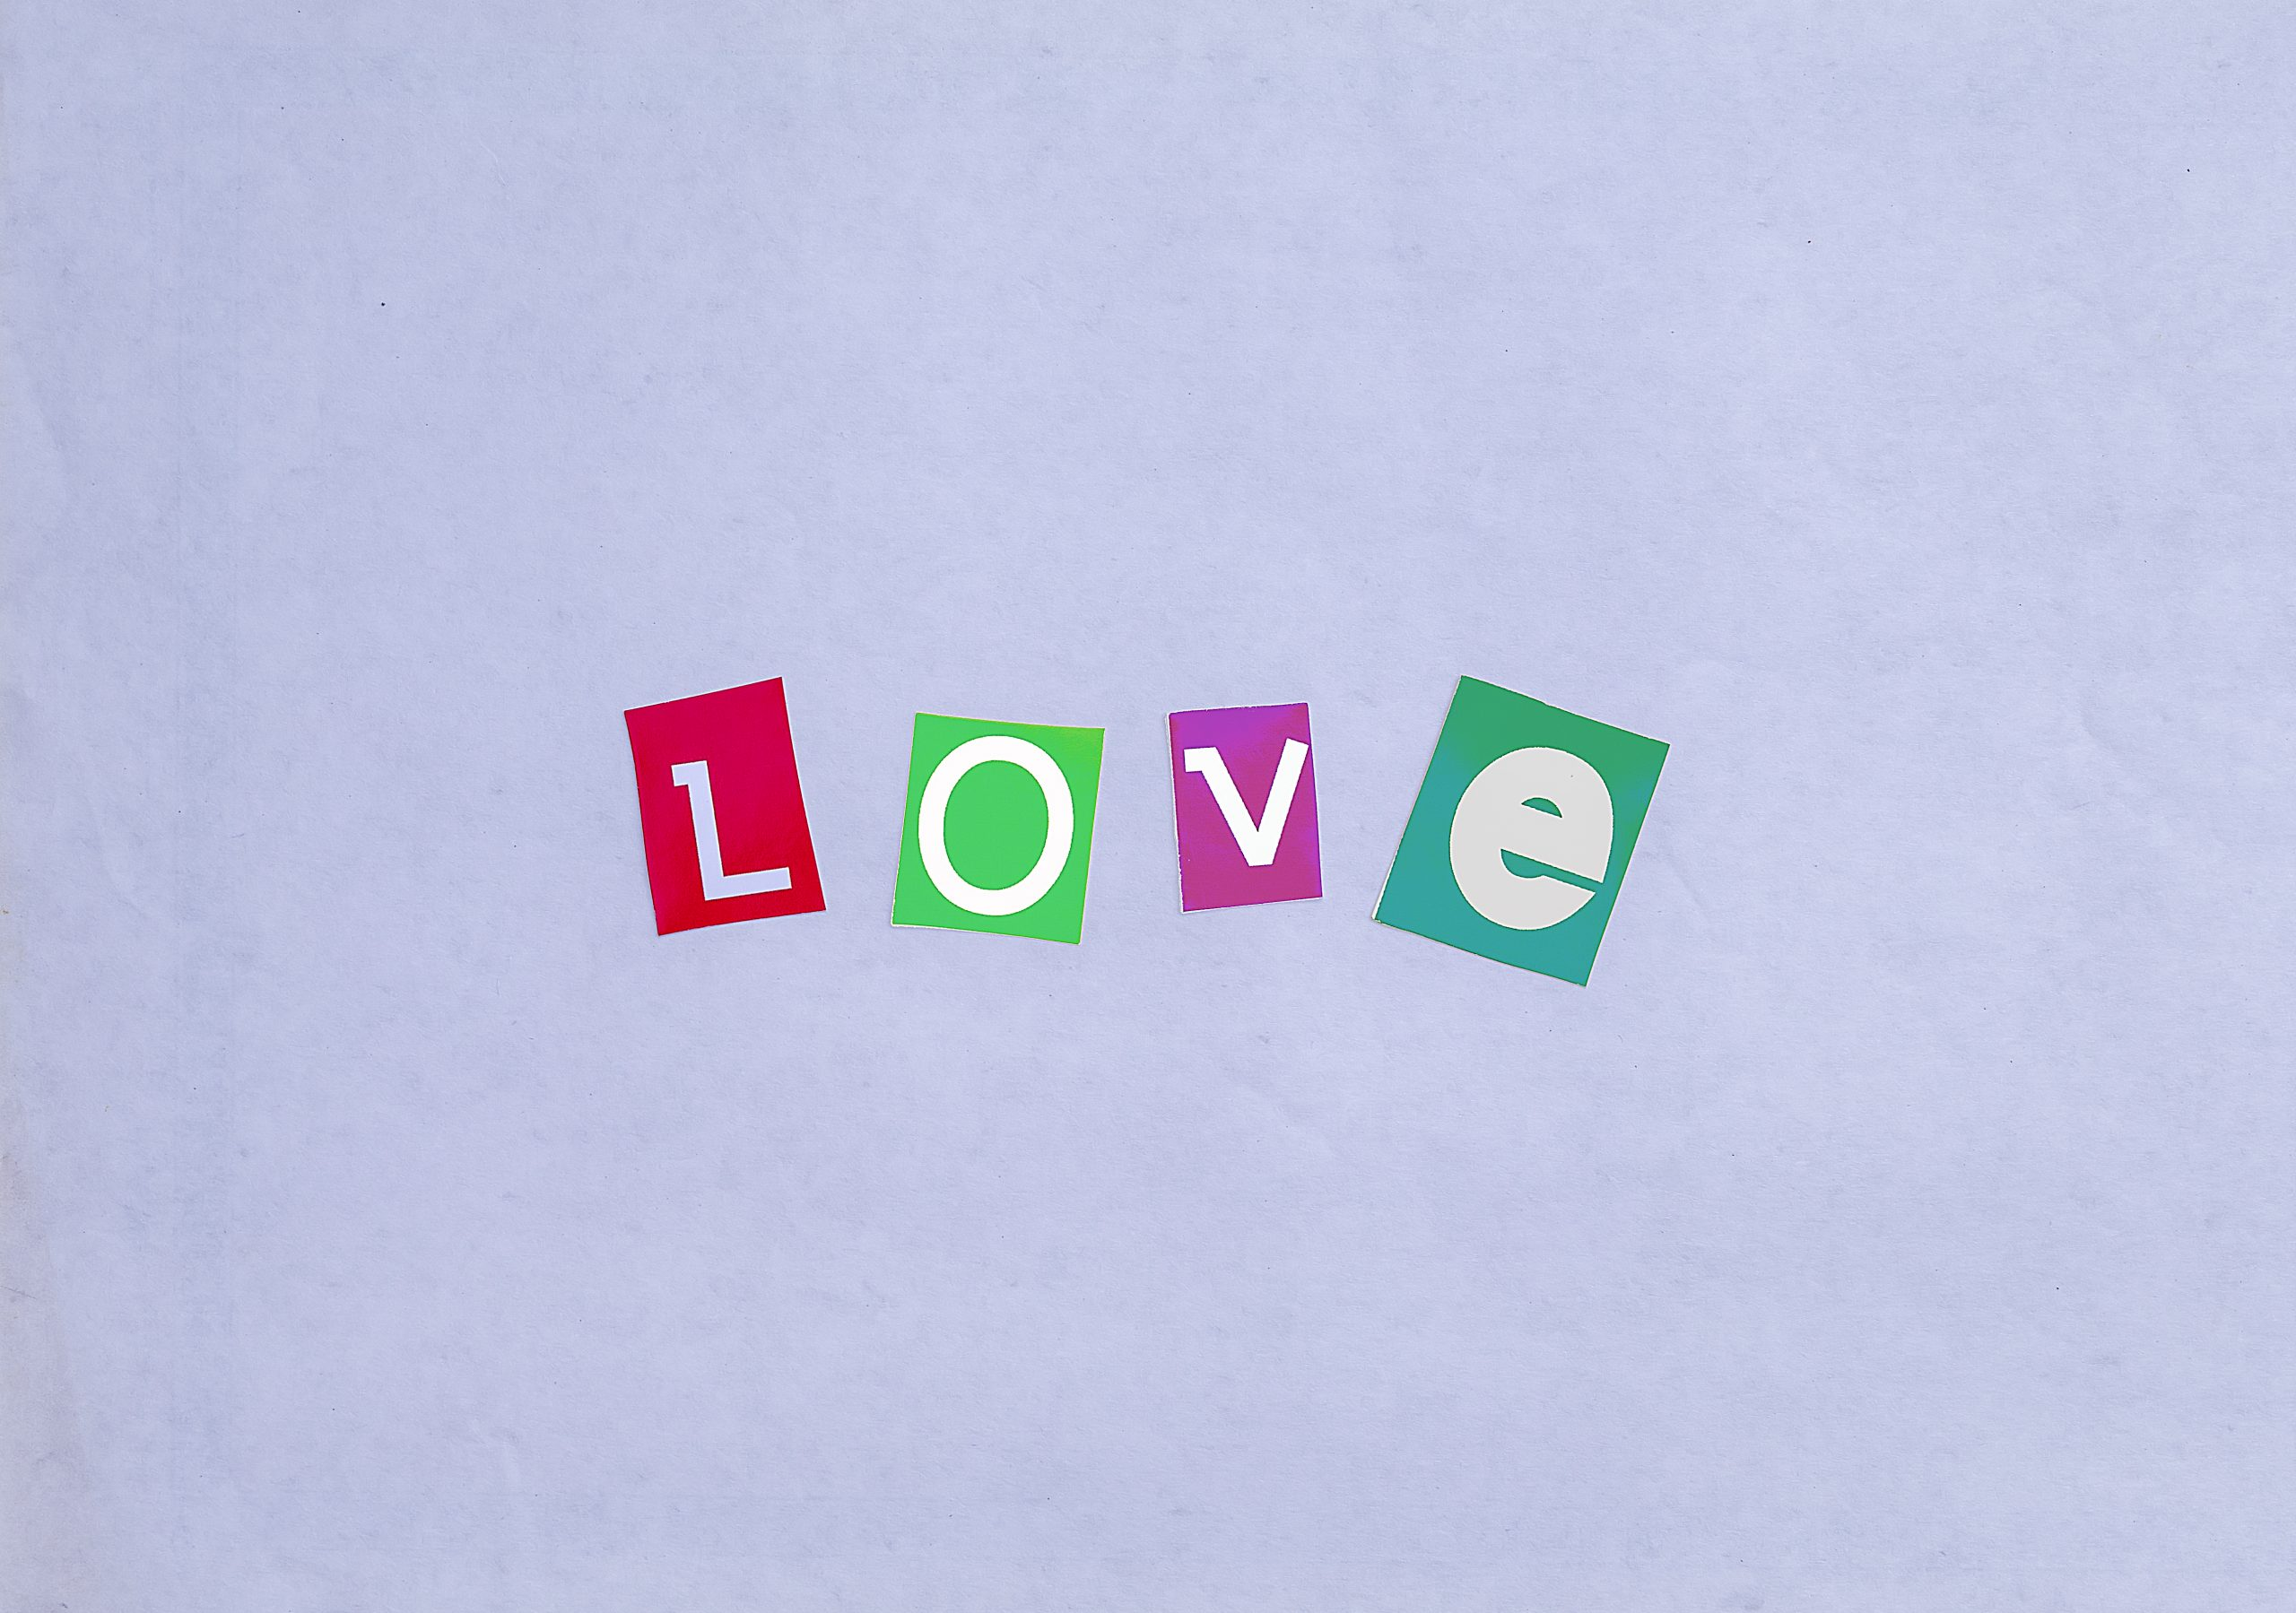 Love written with stickers